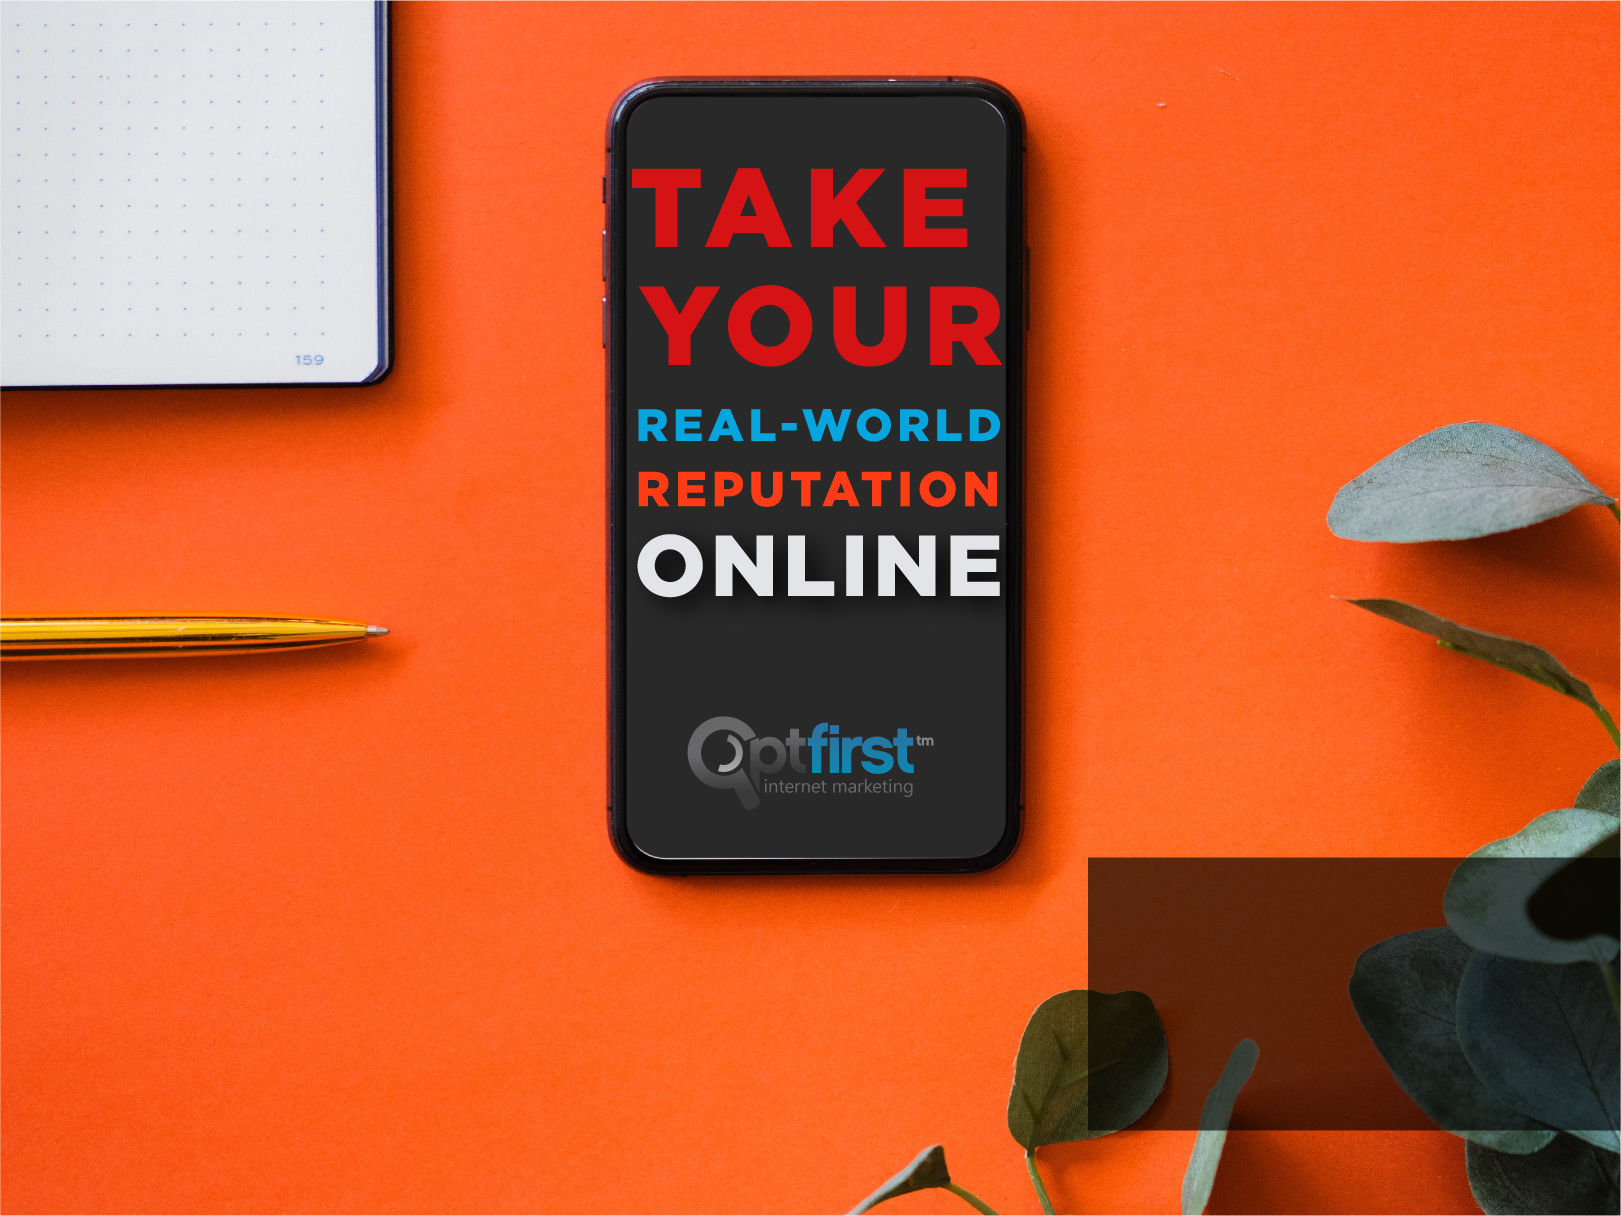 Take Your Real-World Reputation Online